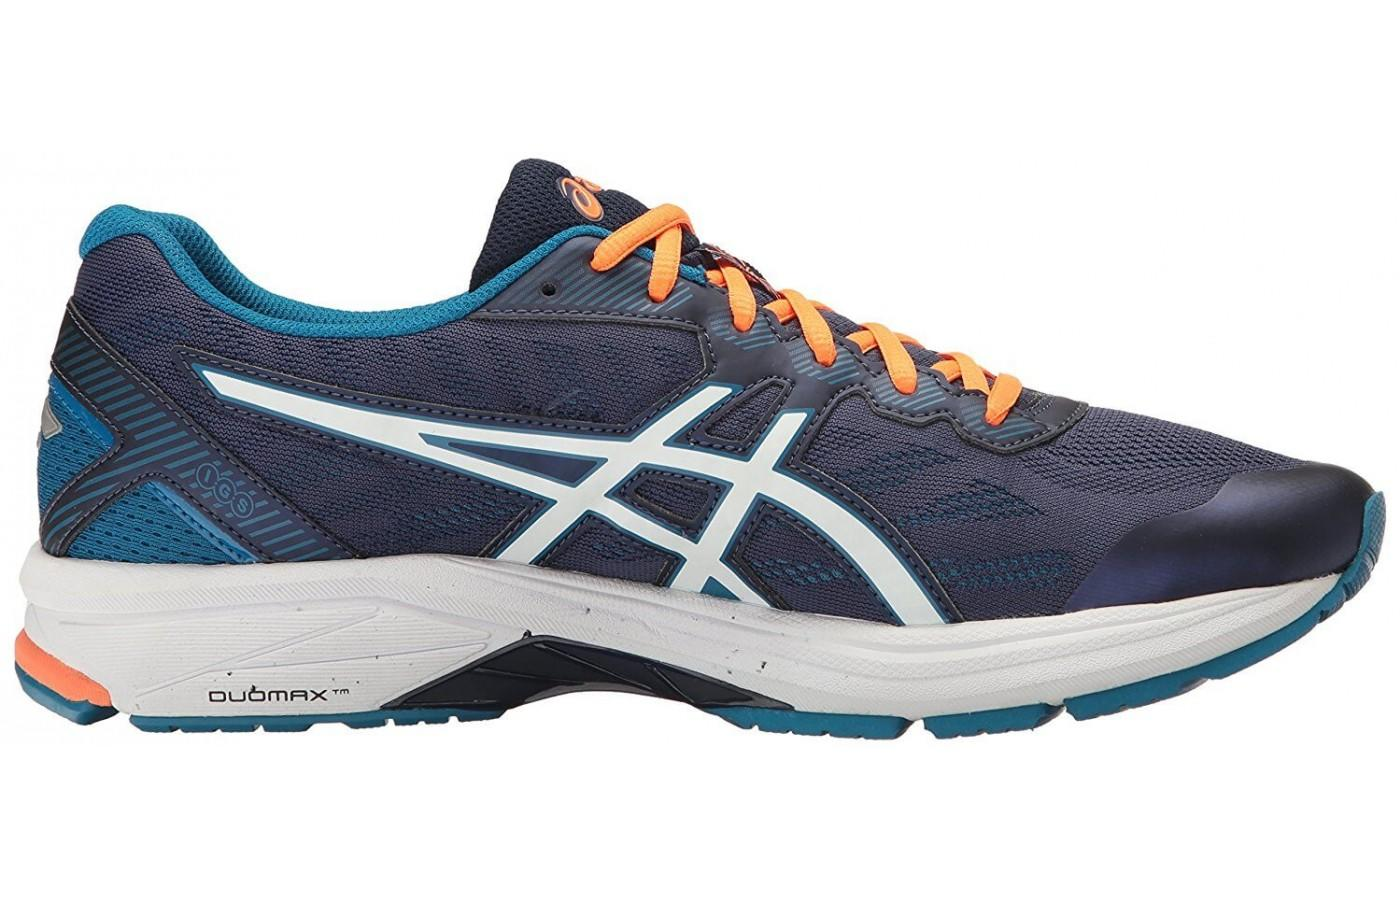 asics gt 1000 6 vs gel pulse 9